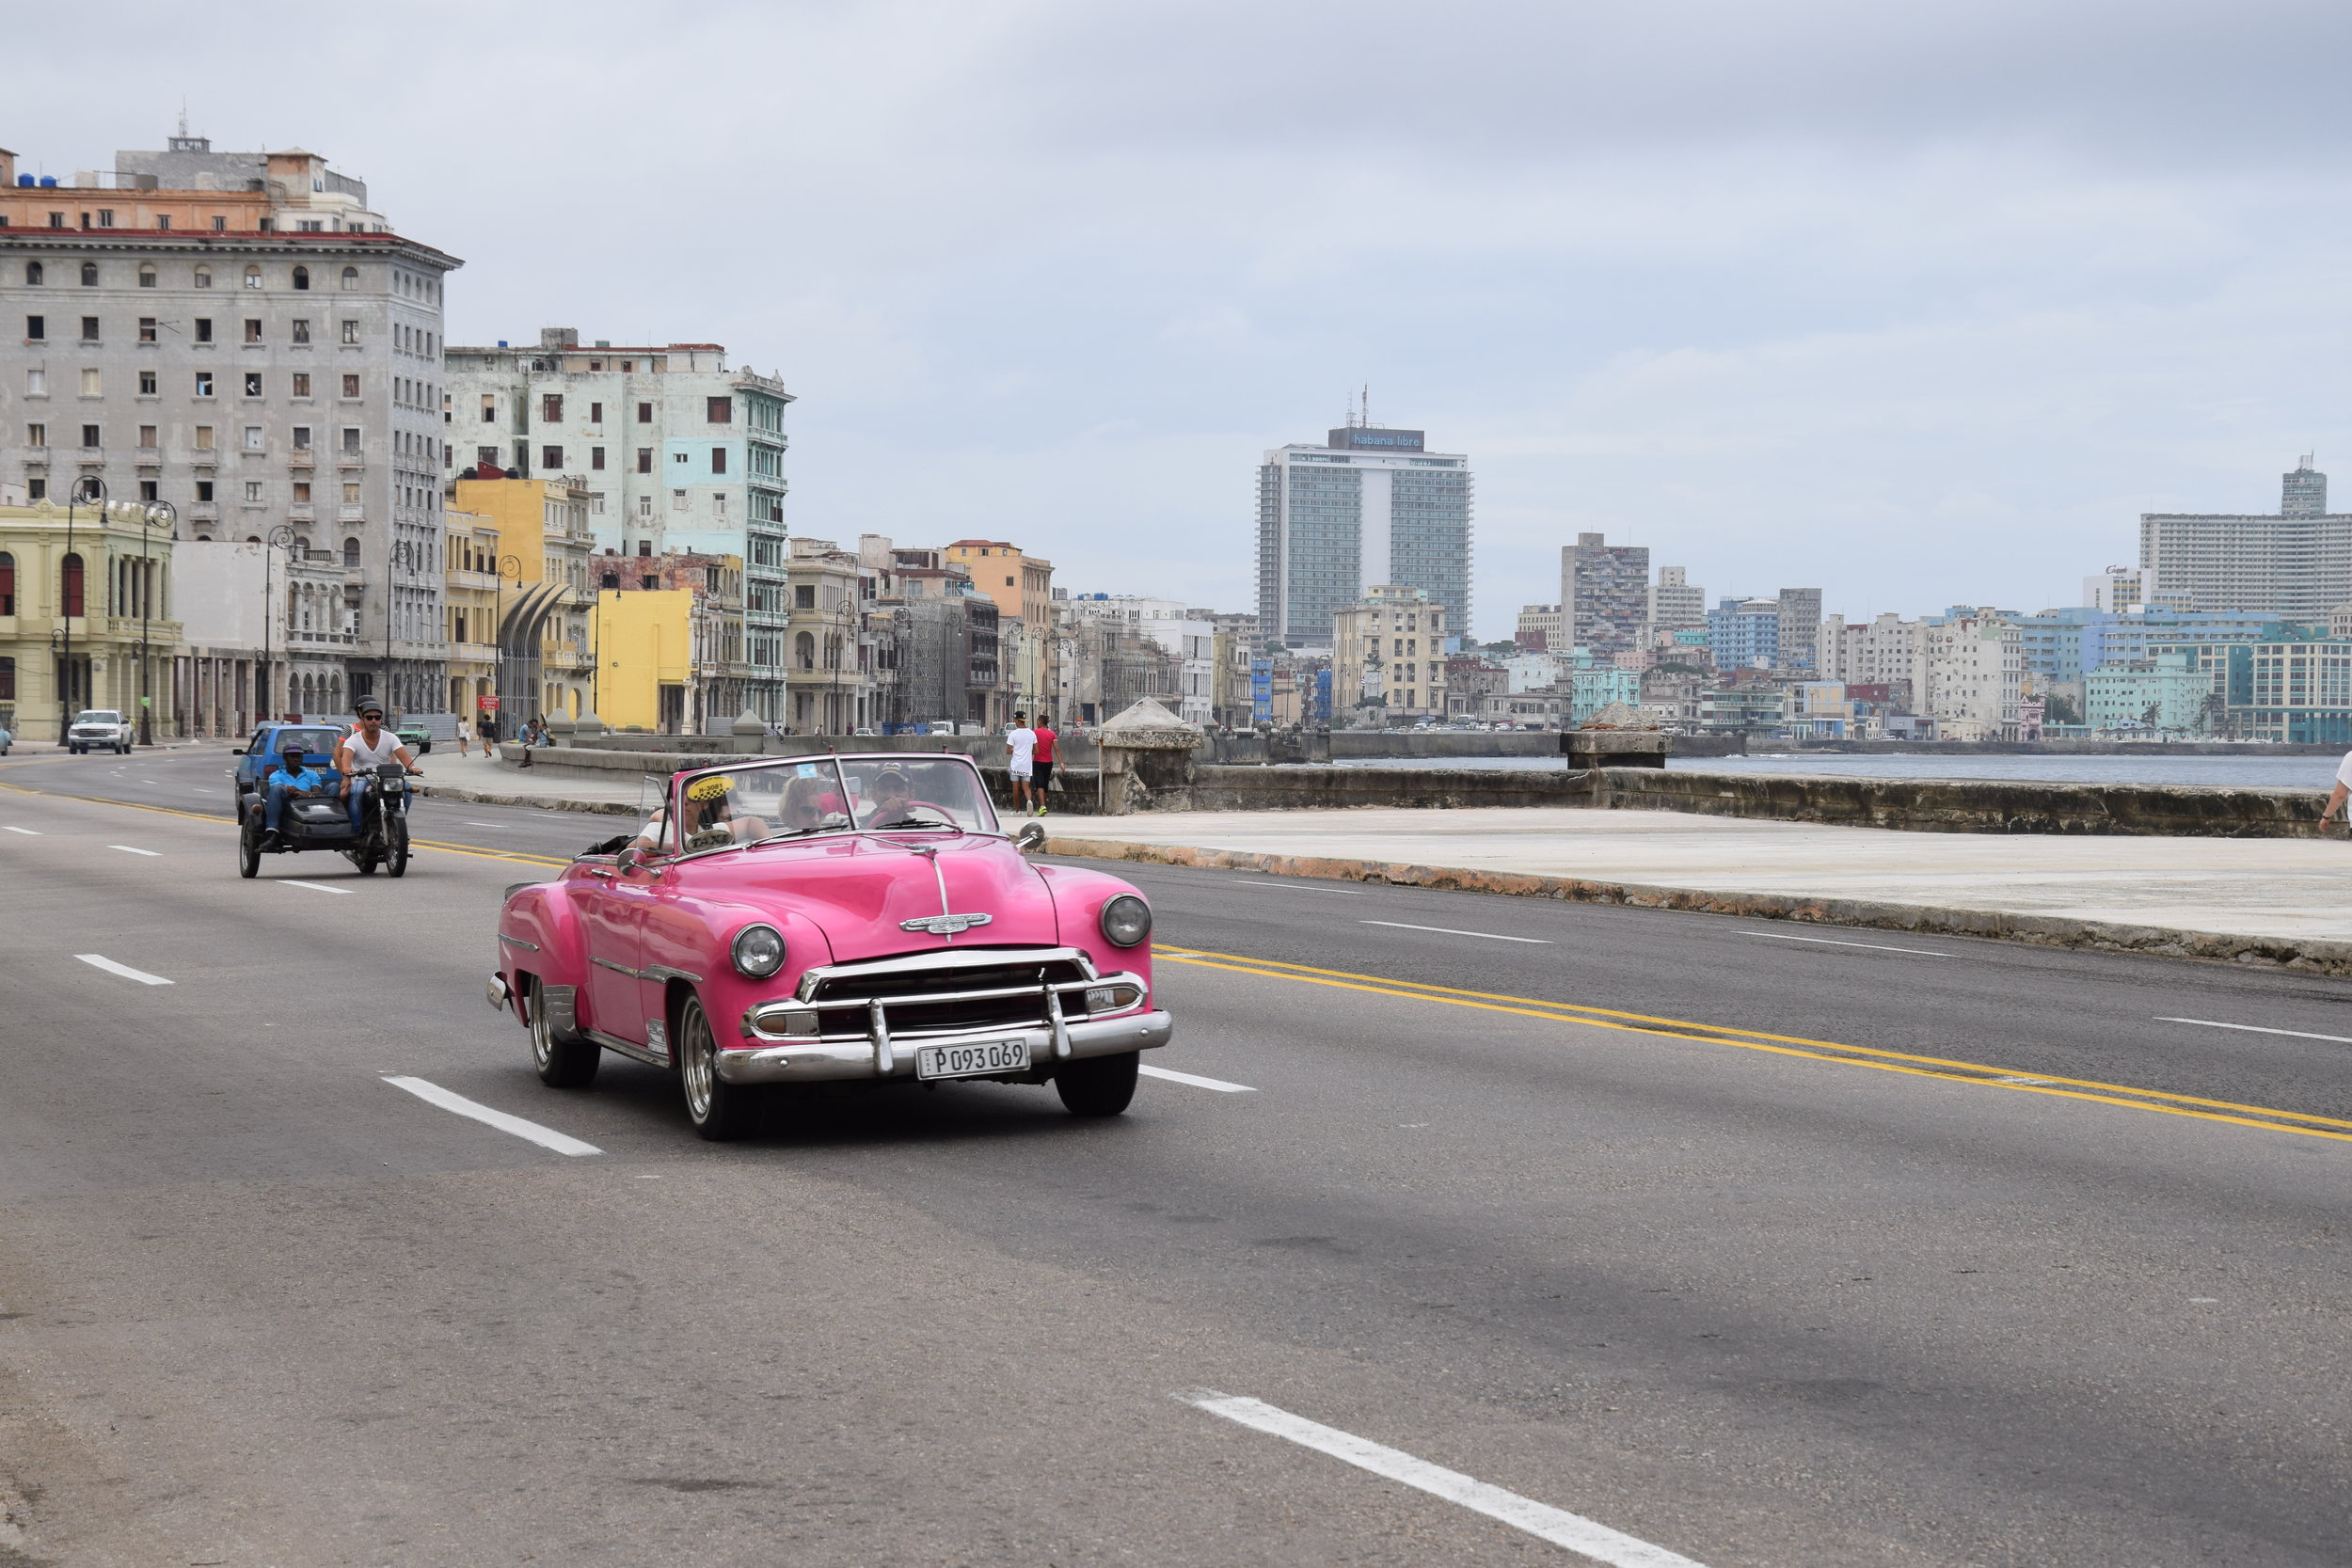 HAVANA - Travel back in time to a land of pink cadillacs, AfroCubano culture, and the sound of salsa music echoing through the streets. Our 100% custom-designed 4-day guides are curated so that you can make the most of this incredible and culturally rich city.